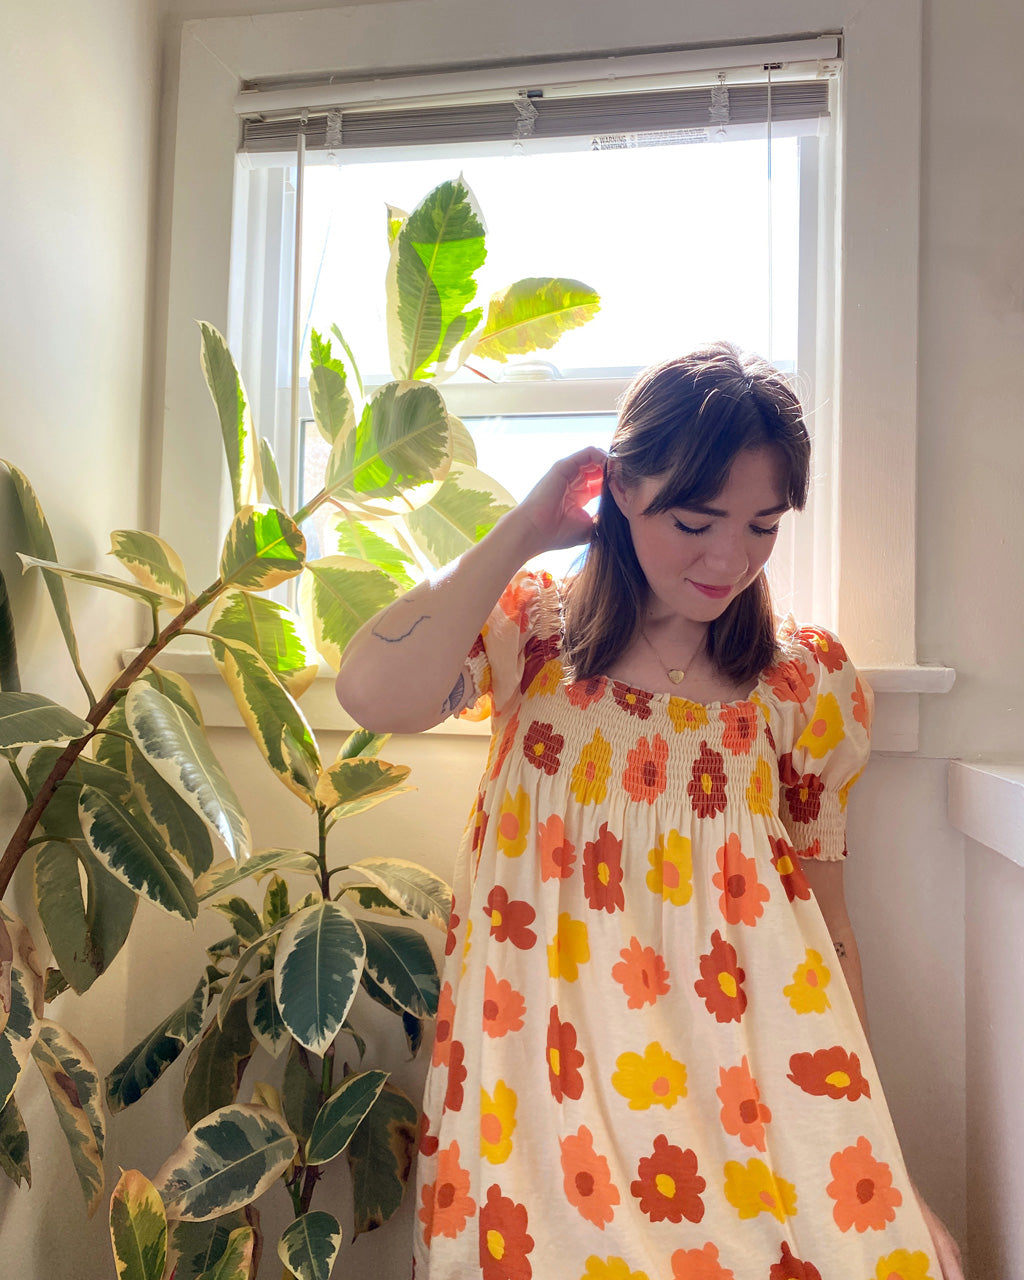 model wearing babydoll dress with red, yellow, orange floral pattern